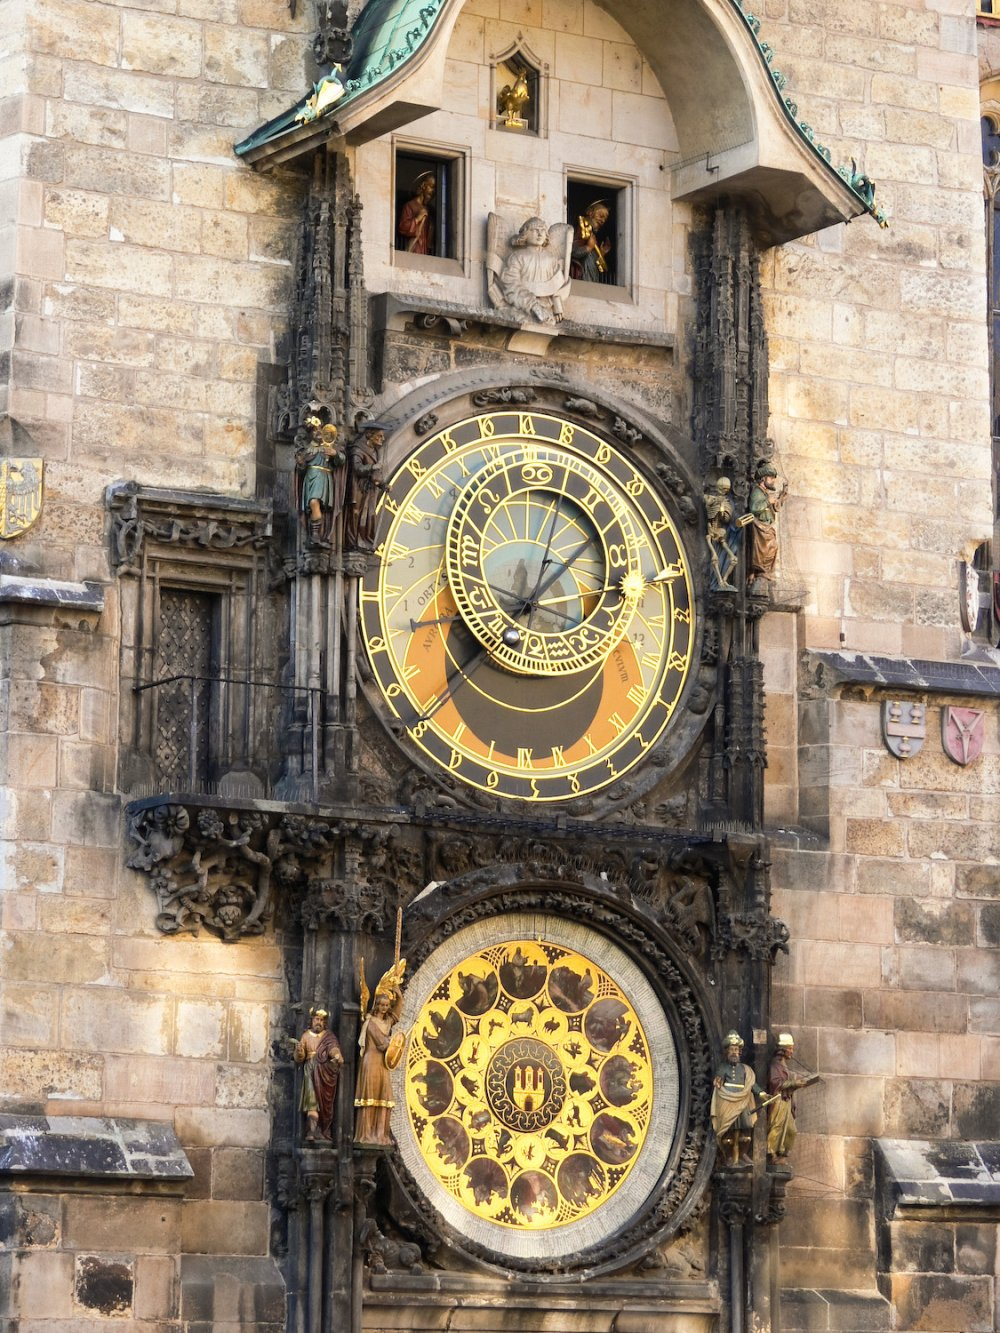 Touriattraktion: Uhr